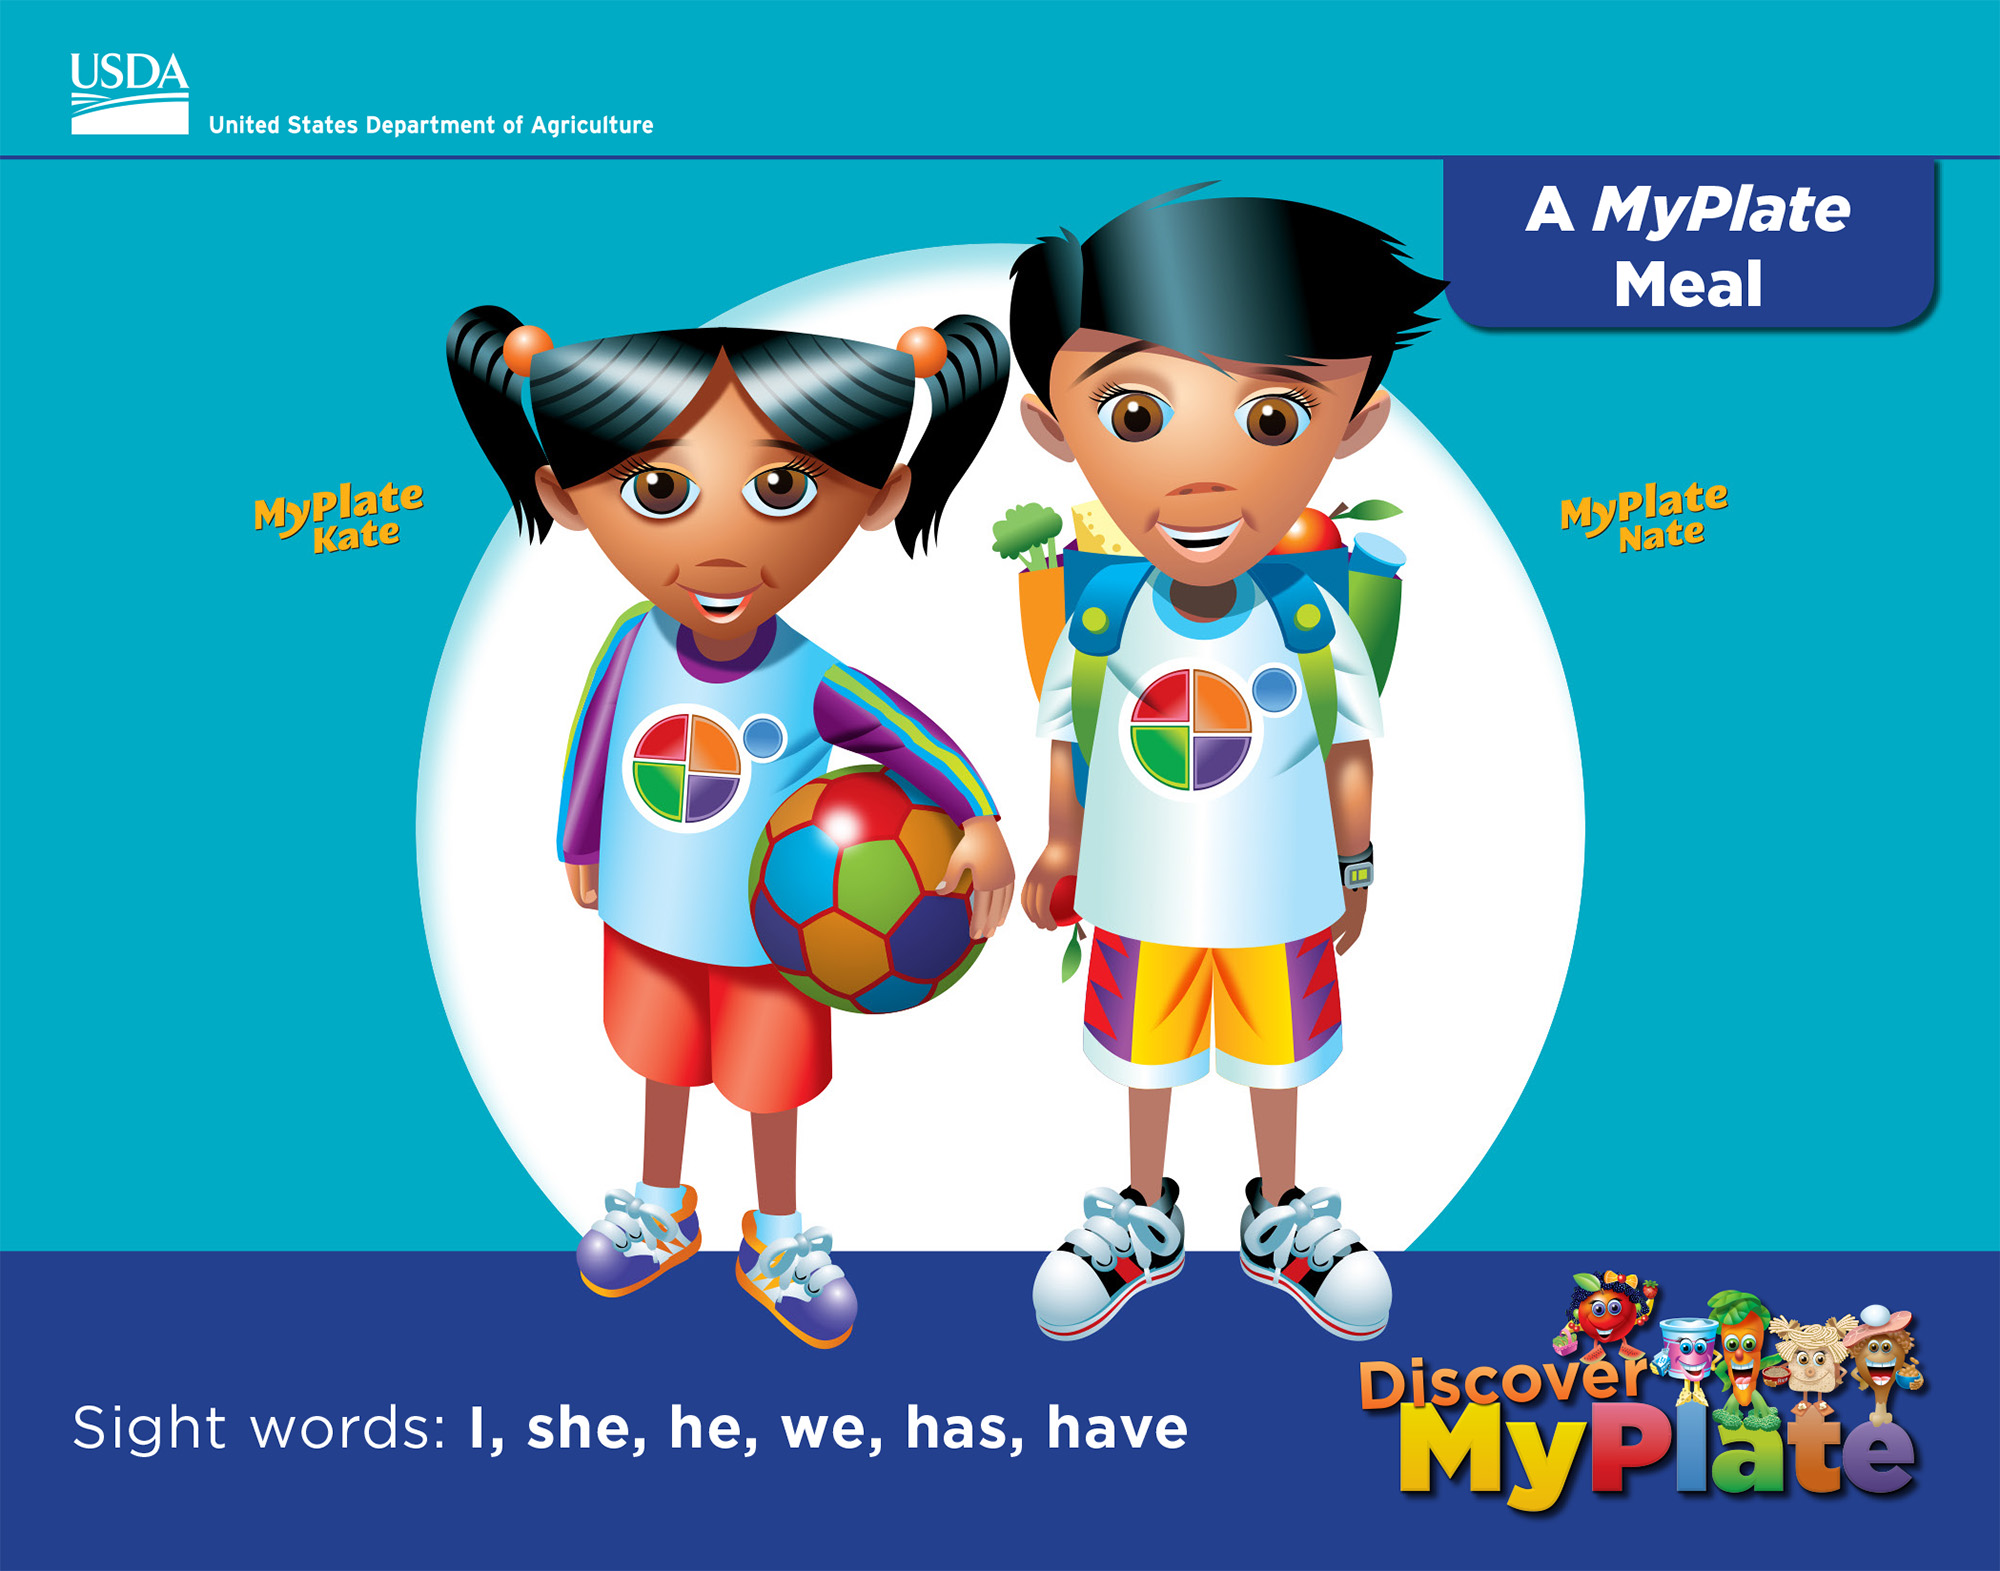 Discover Myplate A Myplate Meal